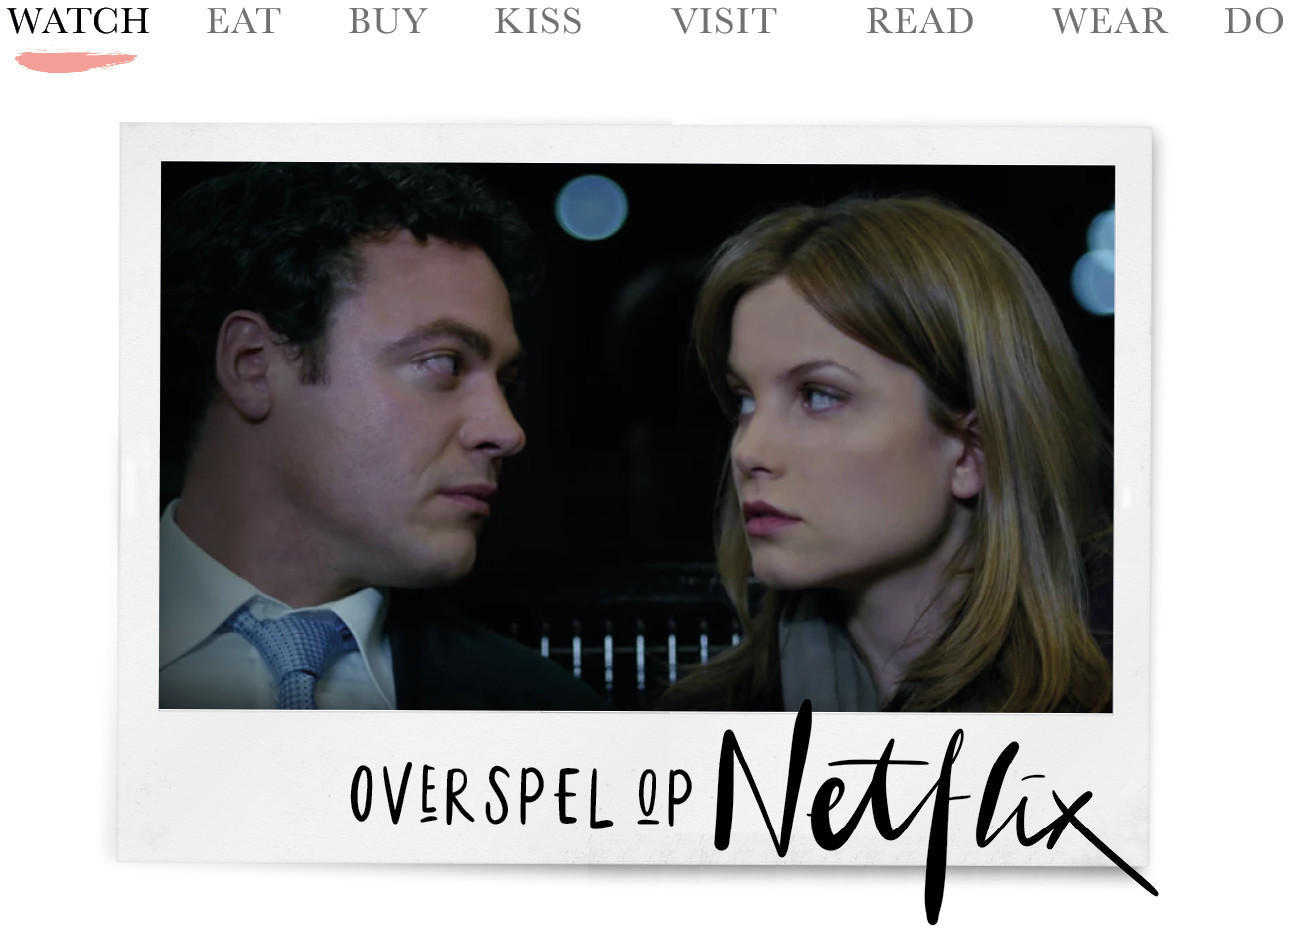 hoofdrolspelers van overspel screenshot beeld nu te zien op netflix today we watch